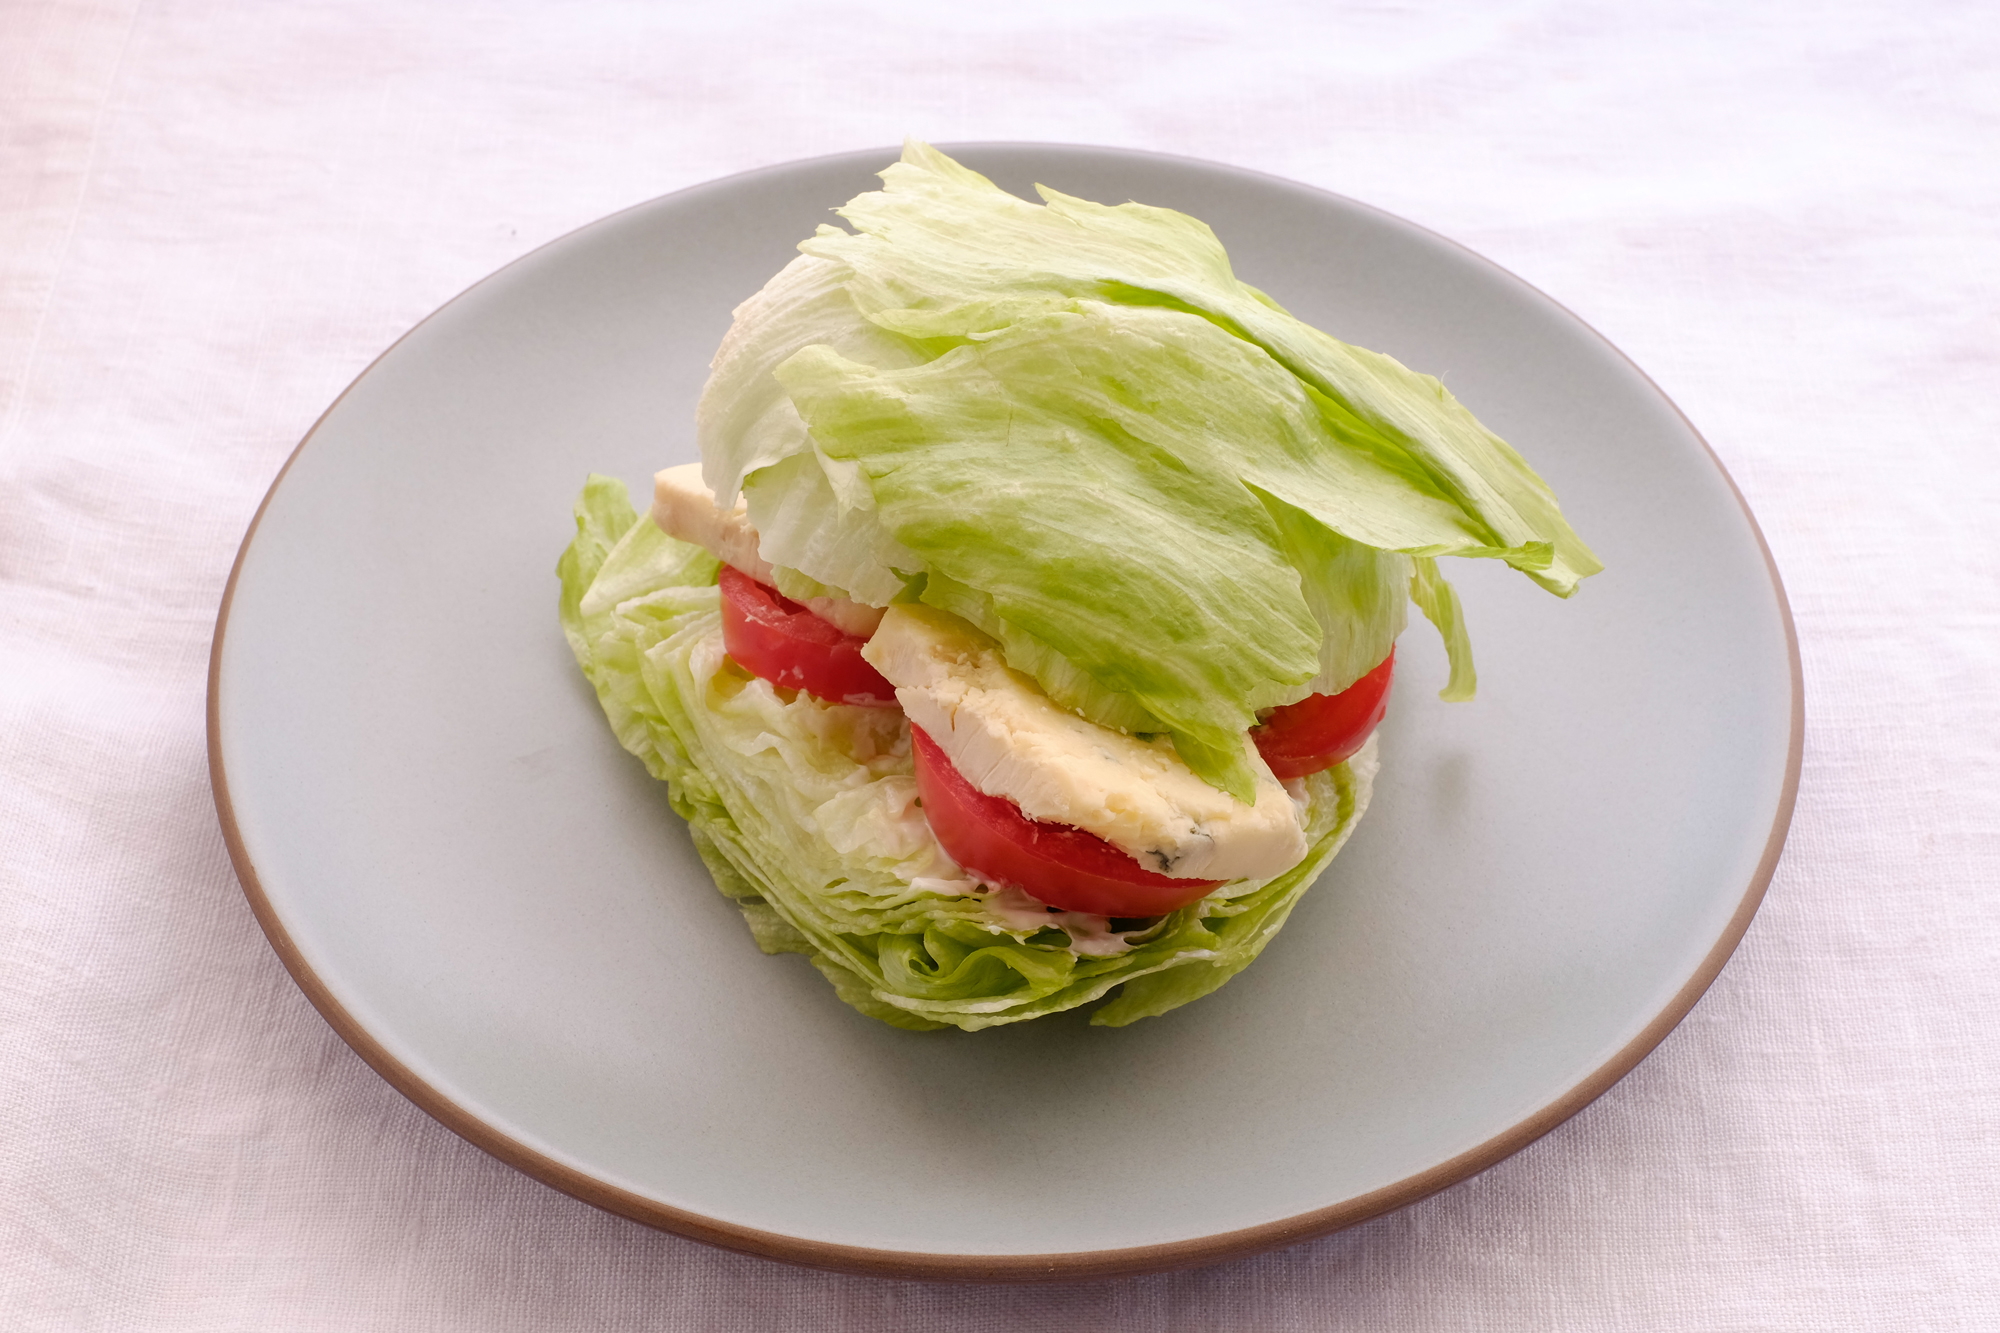 Iceberg Wedge Salad Sandwich